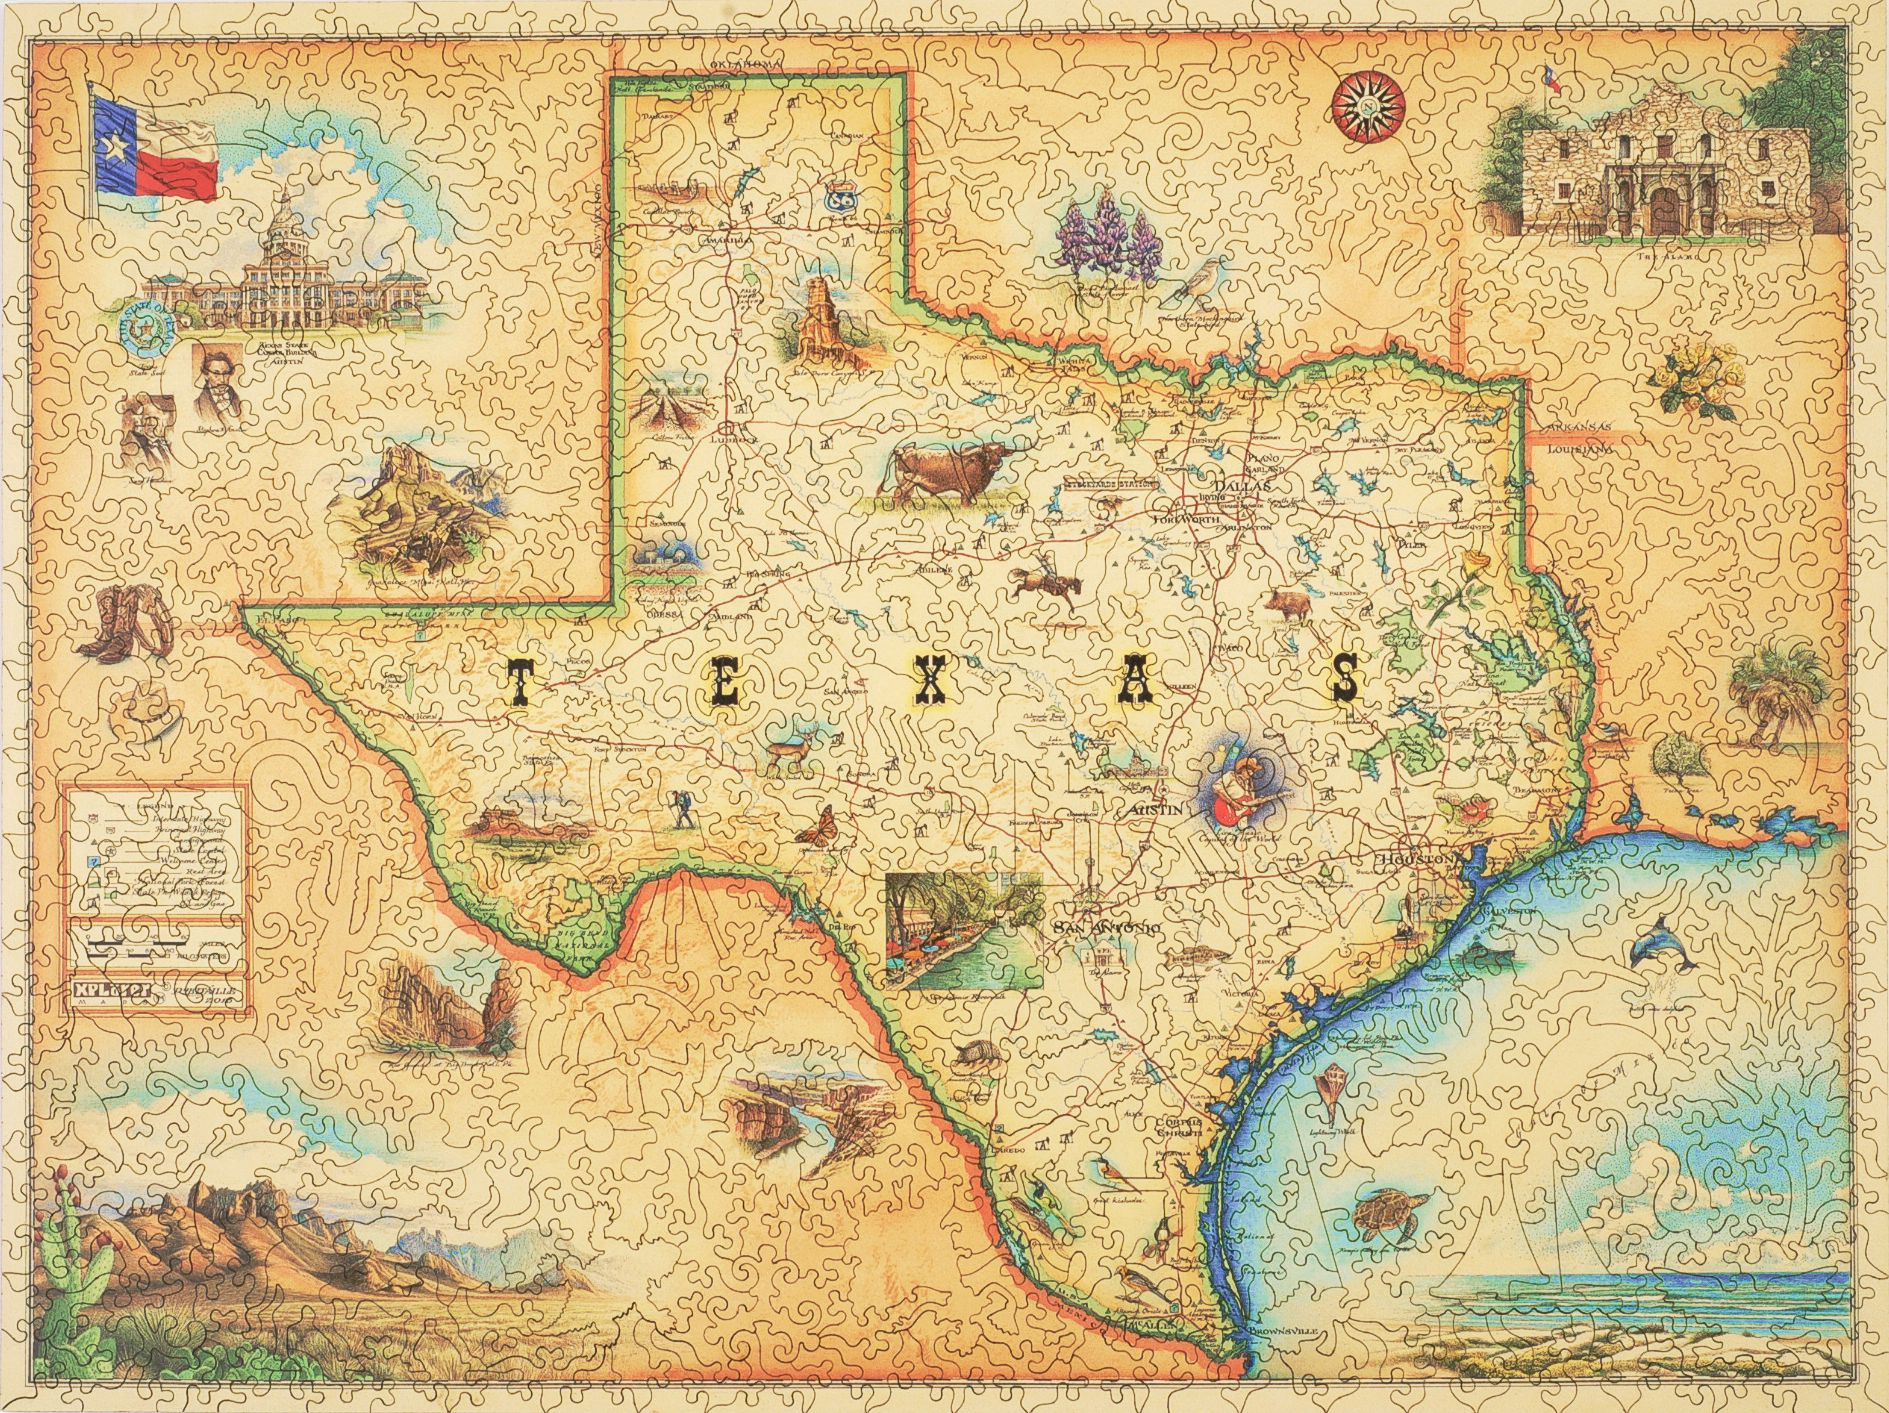 Texas Map Wooden Jigsaw Puzzle Liberty Puzzles Made In The USA - Trxas map